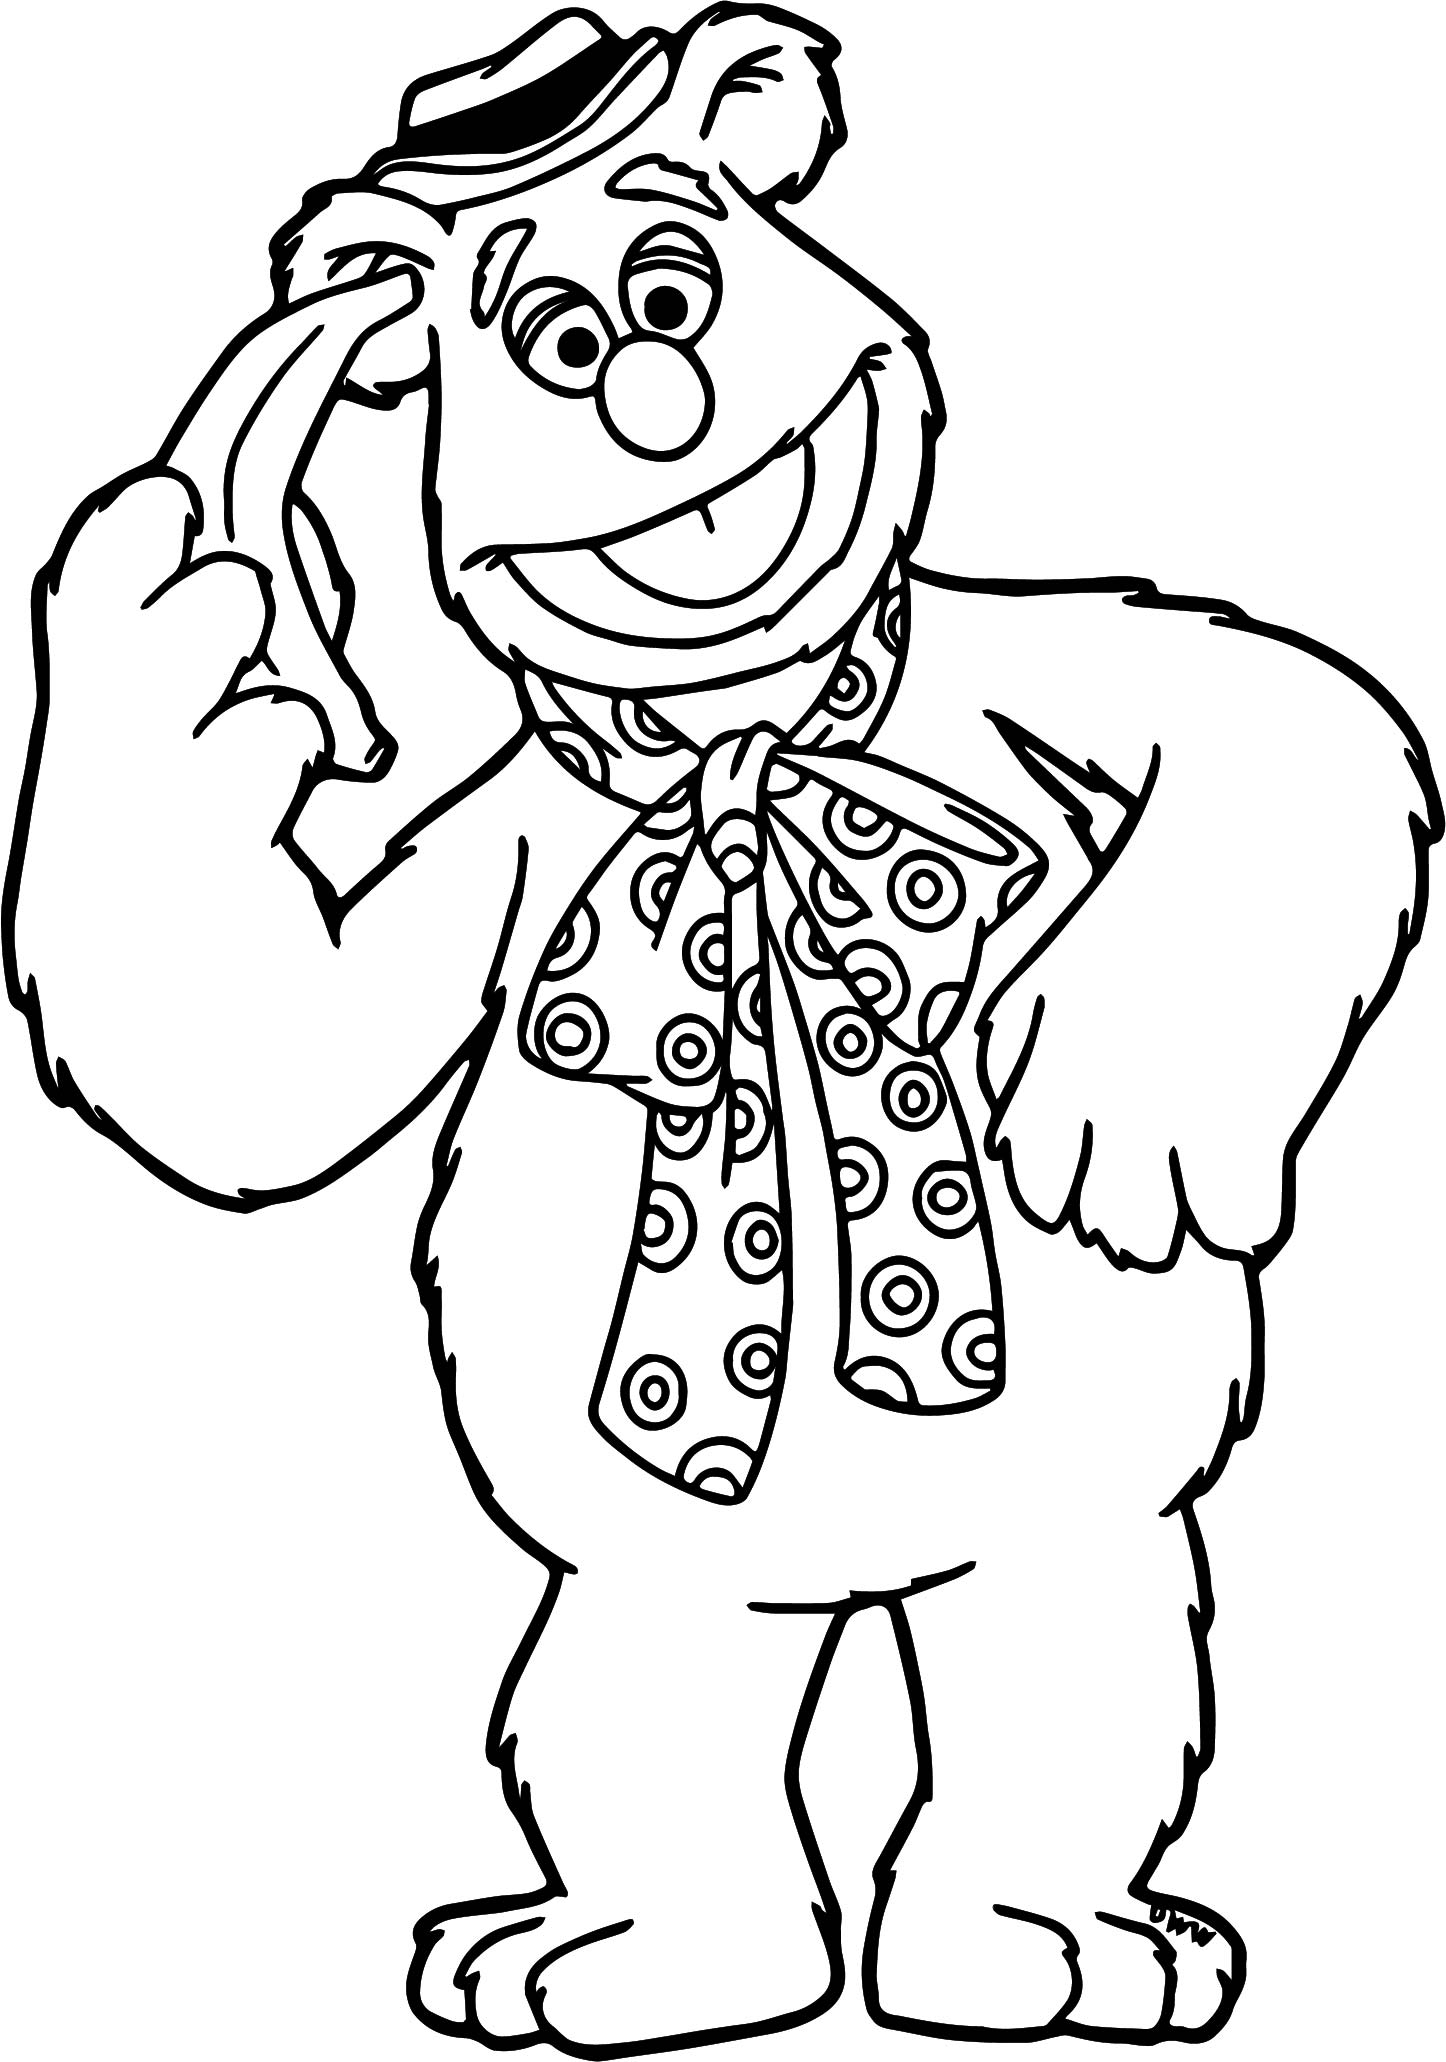 1446x2062 The Muppets Coloring Pages Printable Coloring For Kids